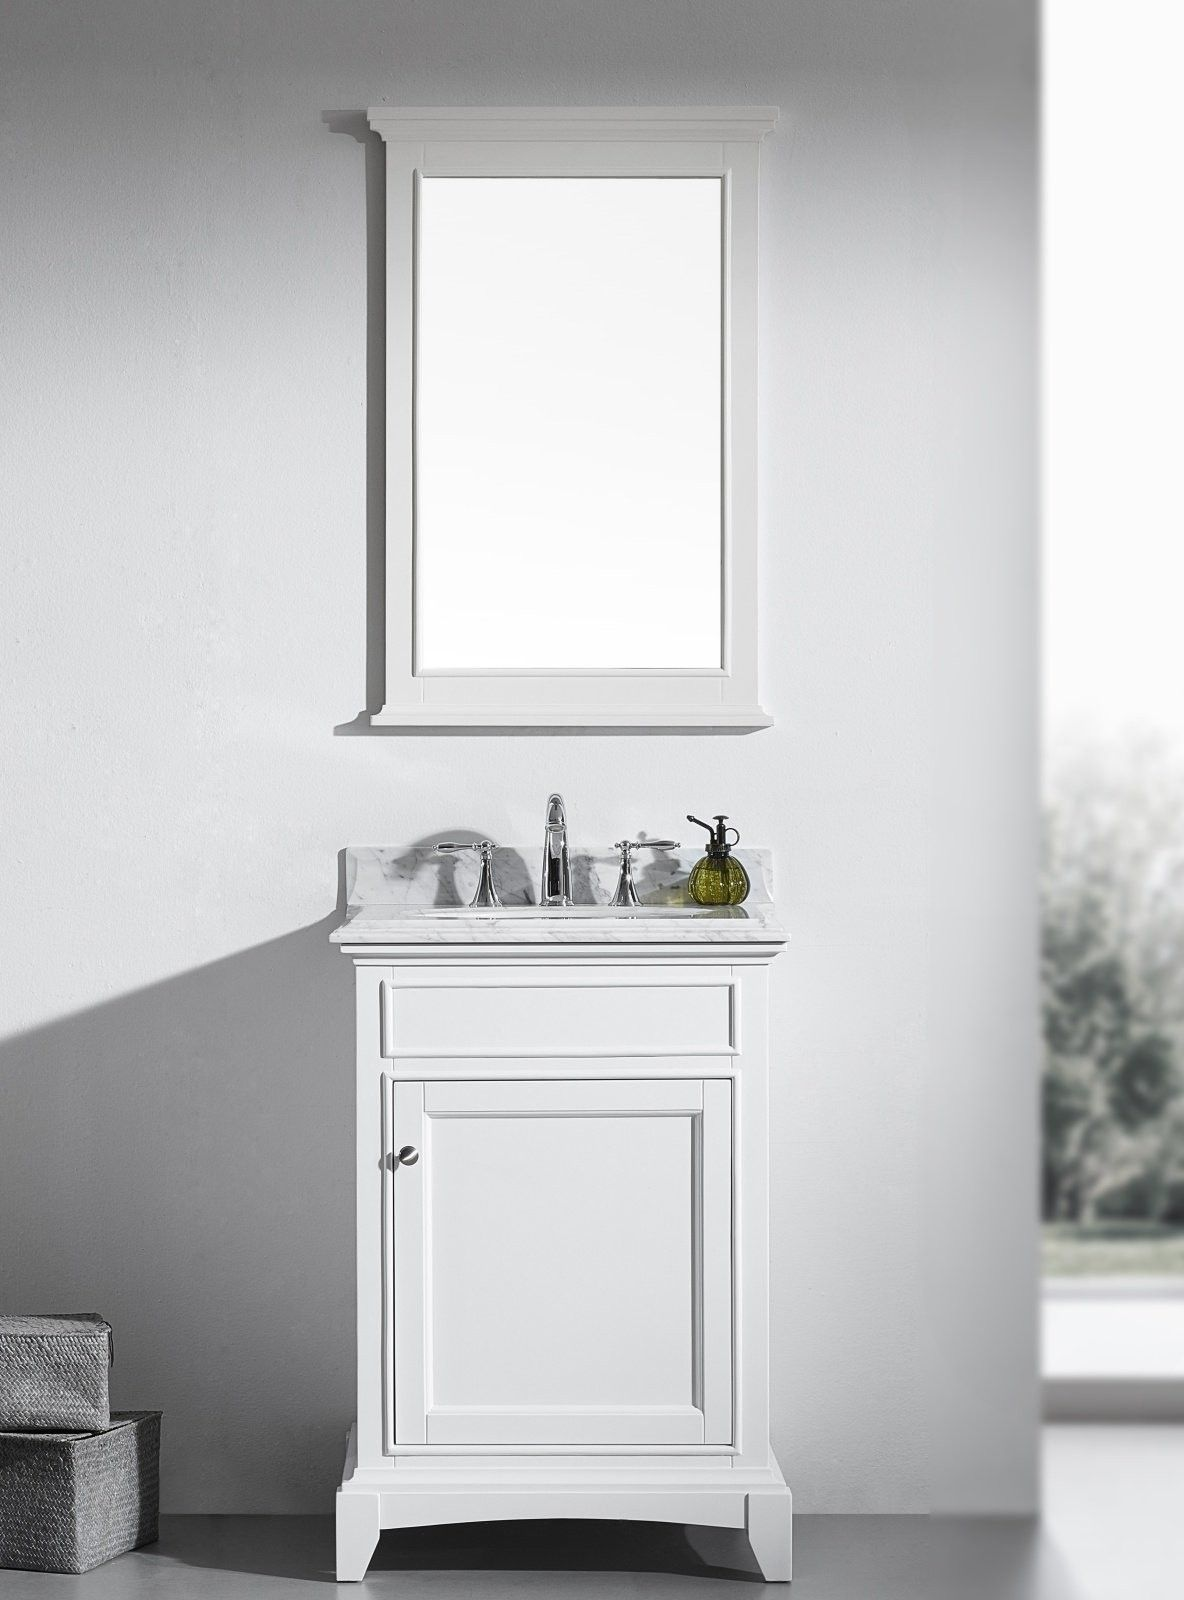 Eviva Elite Stamford 24 White Solid Wood Bathroom Vanity Set With Double Og Carrera Marble Top Undermount Porcelain Sink